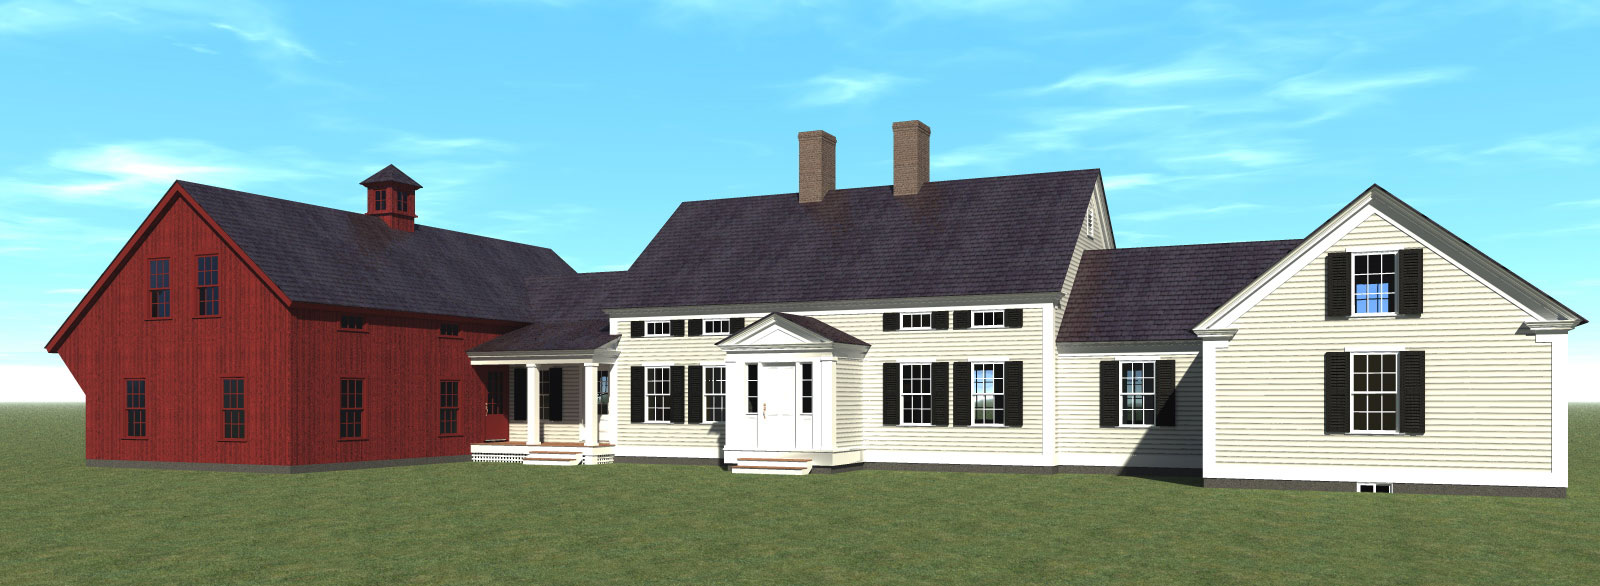 Badger And Associates, Inc. :: House Plans For Sale